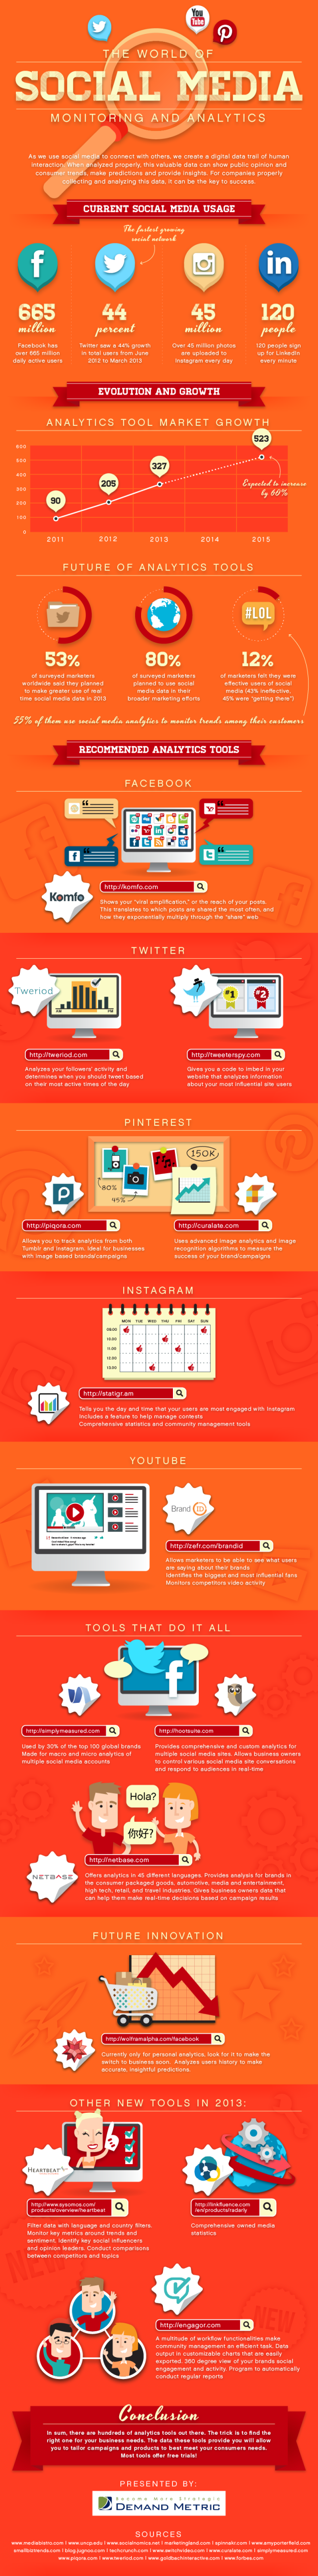 The World of Social Media Monitoring and Analytics #infographic